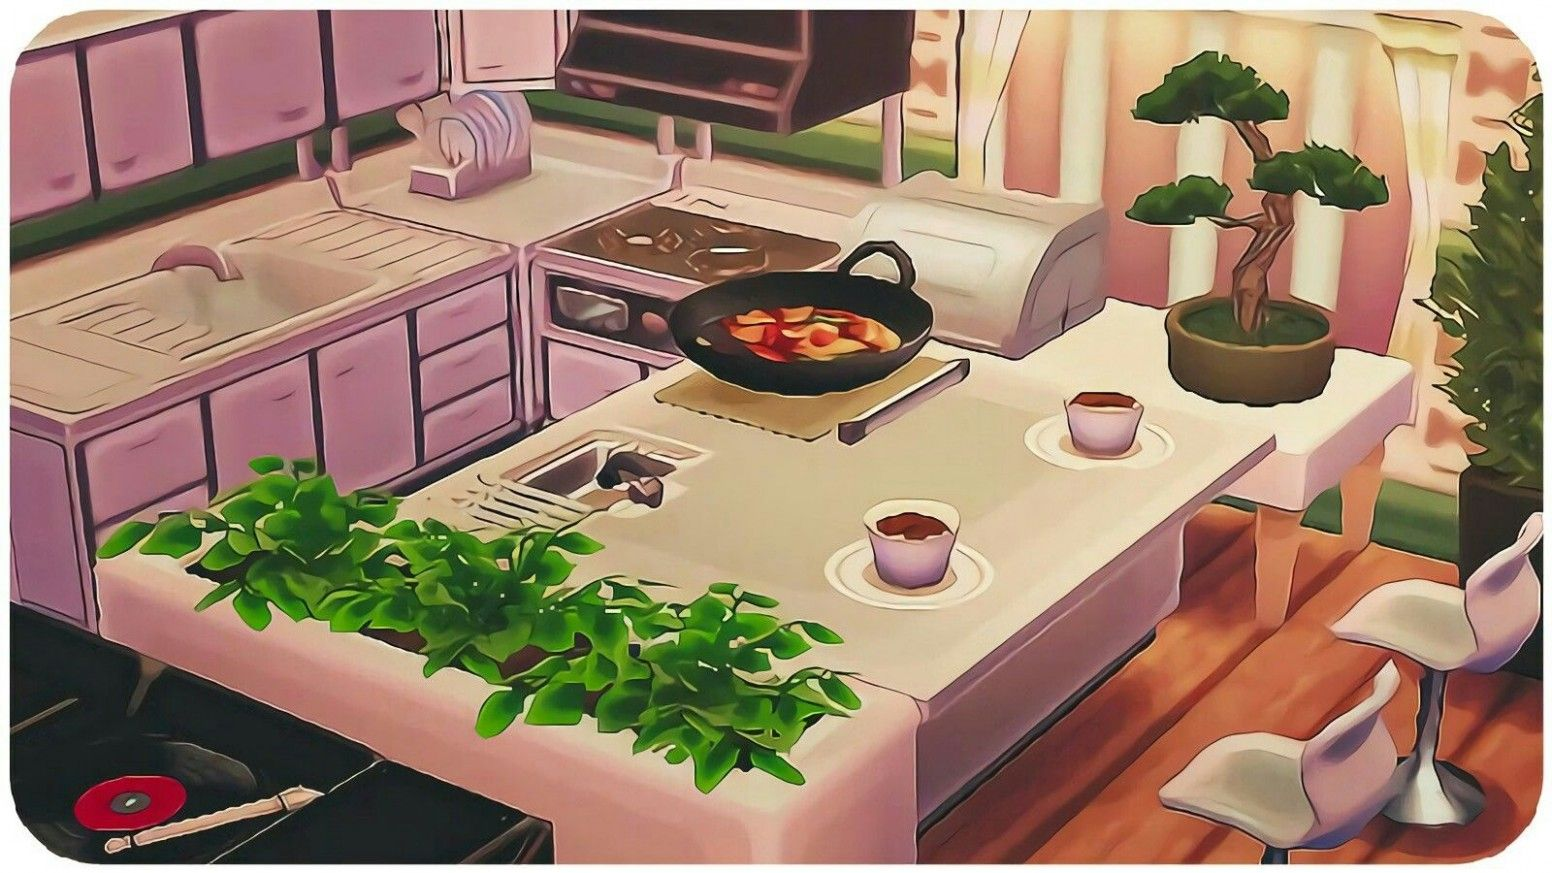 I Will Tell You The Truth About Acnl Kitchen Ideas In The ... on Animal Crossing Kitchen Ideas  id=39579